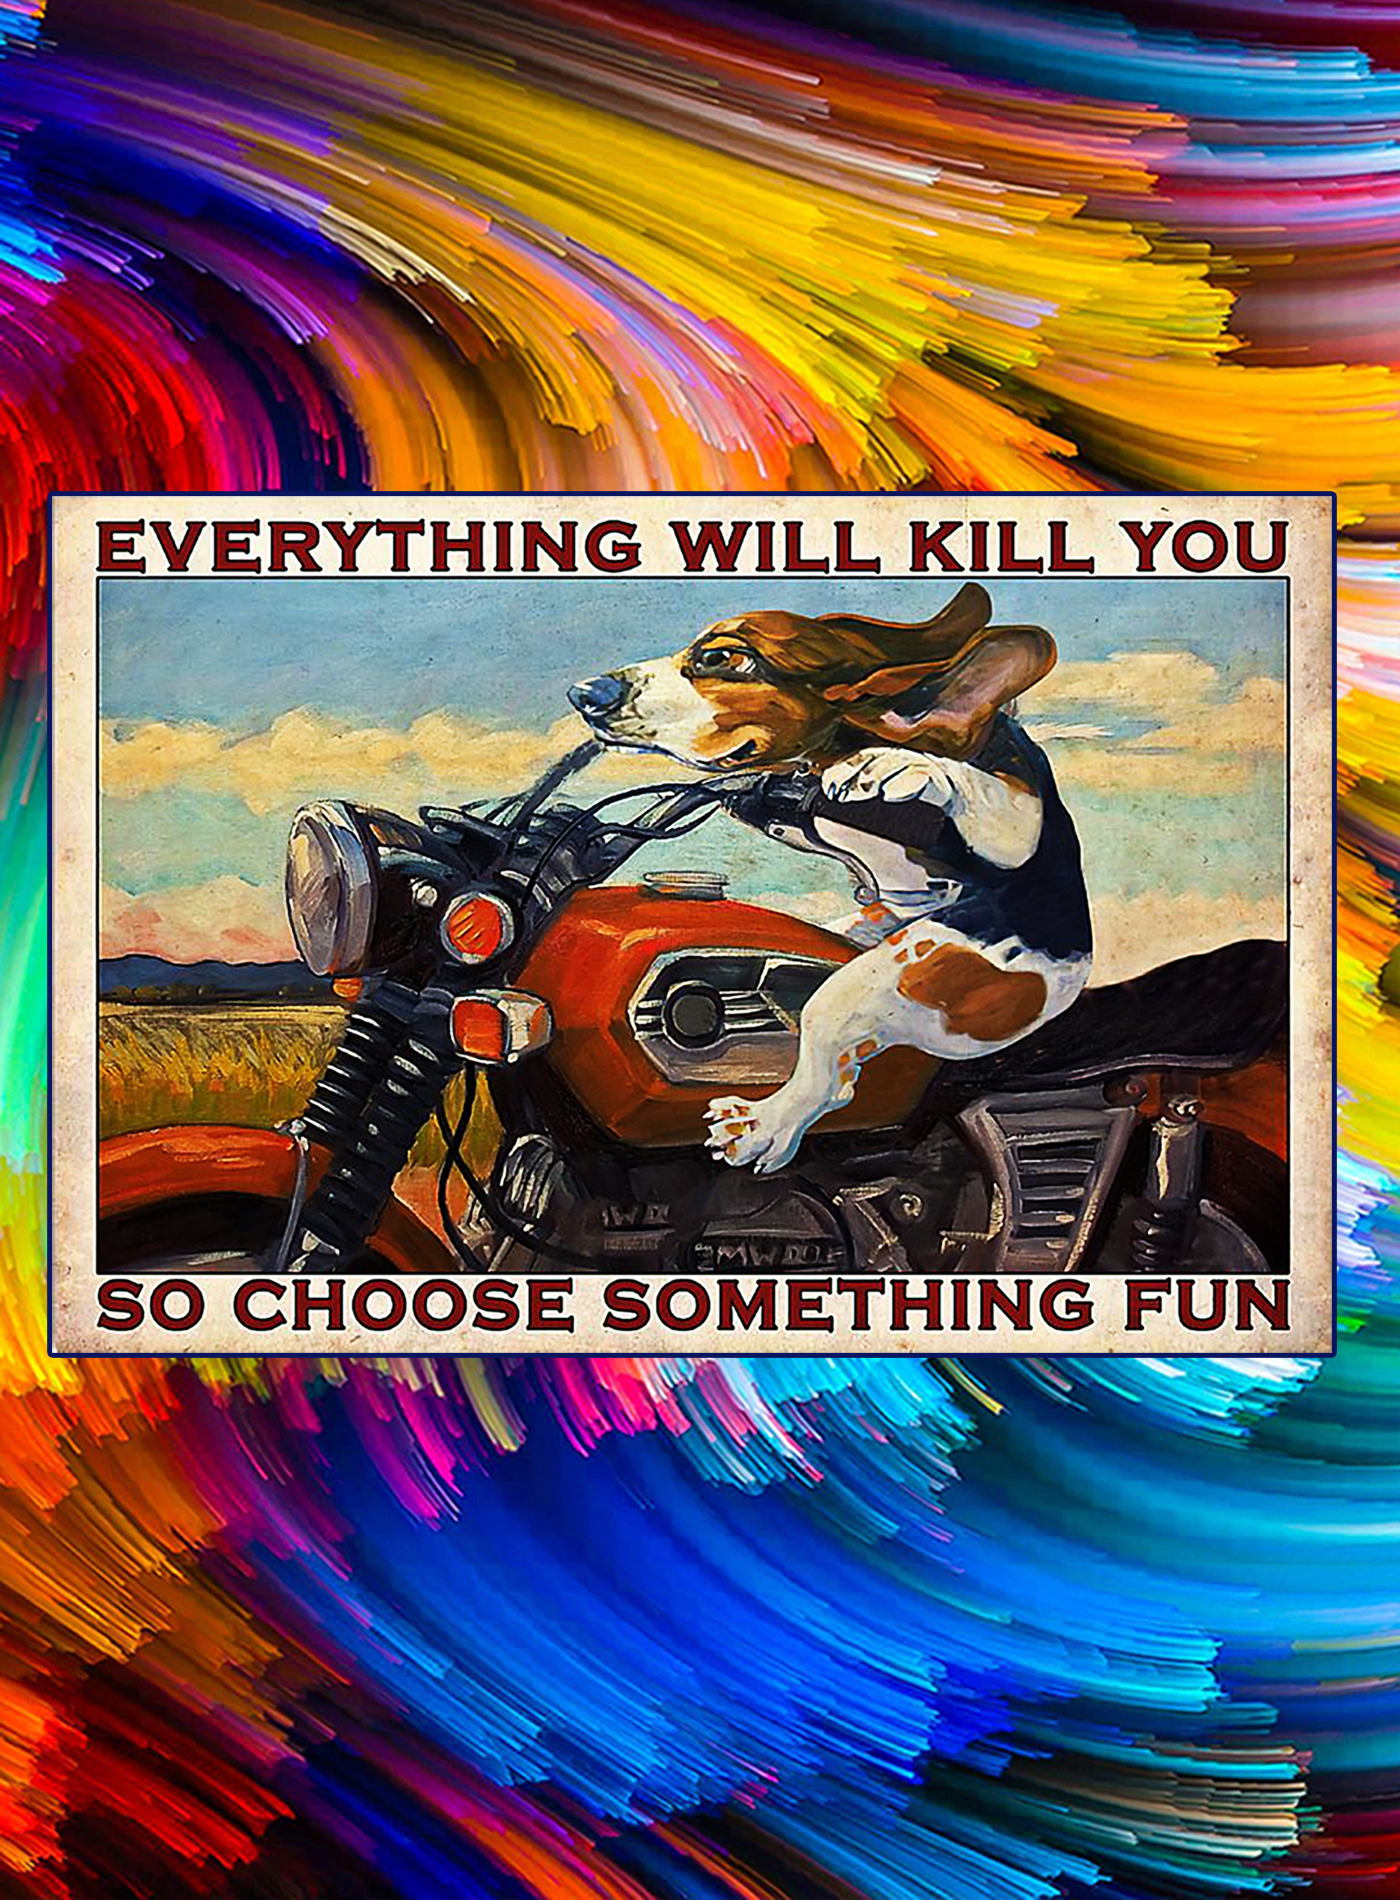 Motorcycle beagle everything will kill you so choose something fun poster - A1